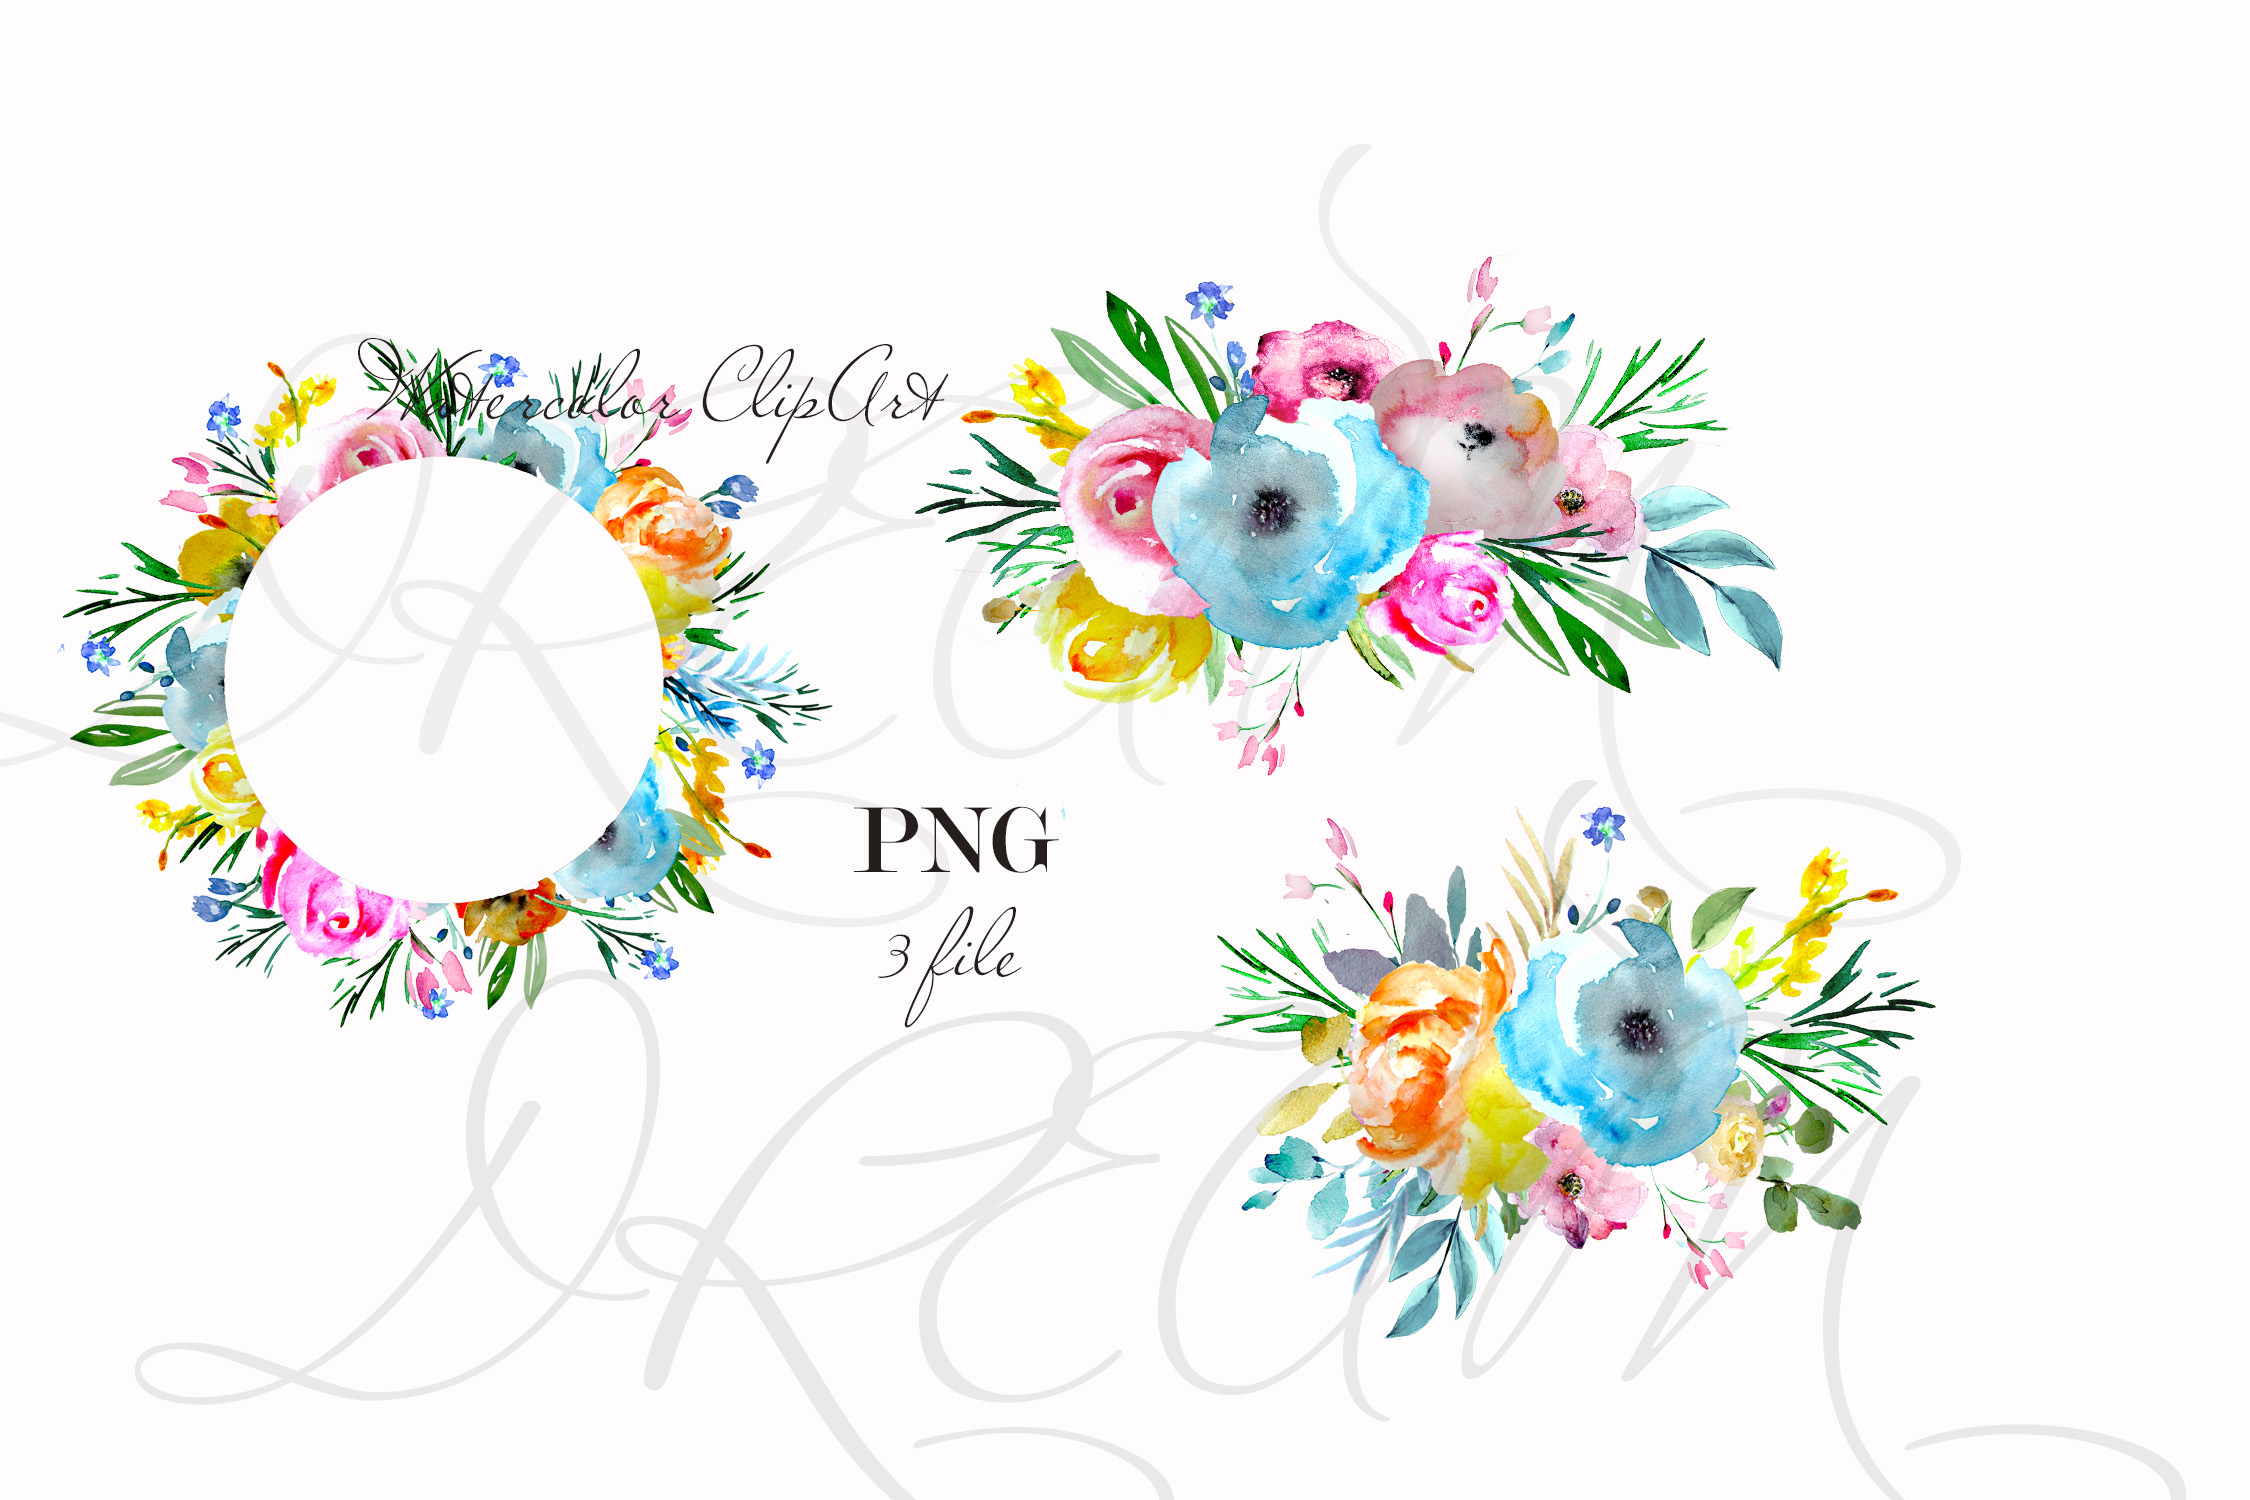 Brigt flowers watercolor clipart sprig floral desin cards example image 2